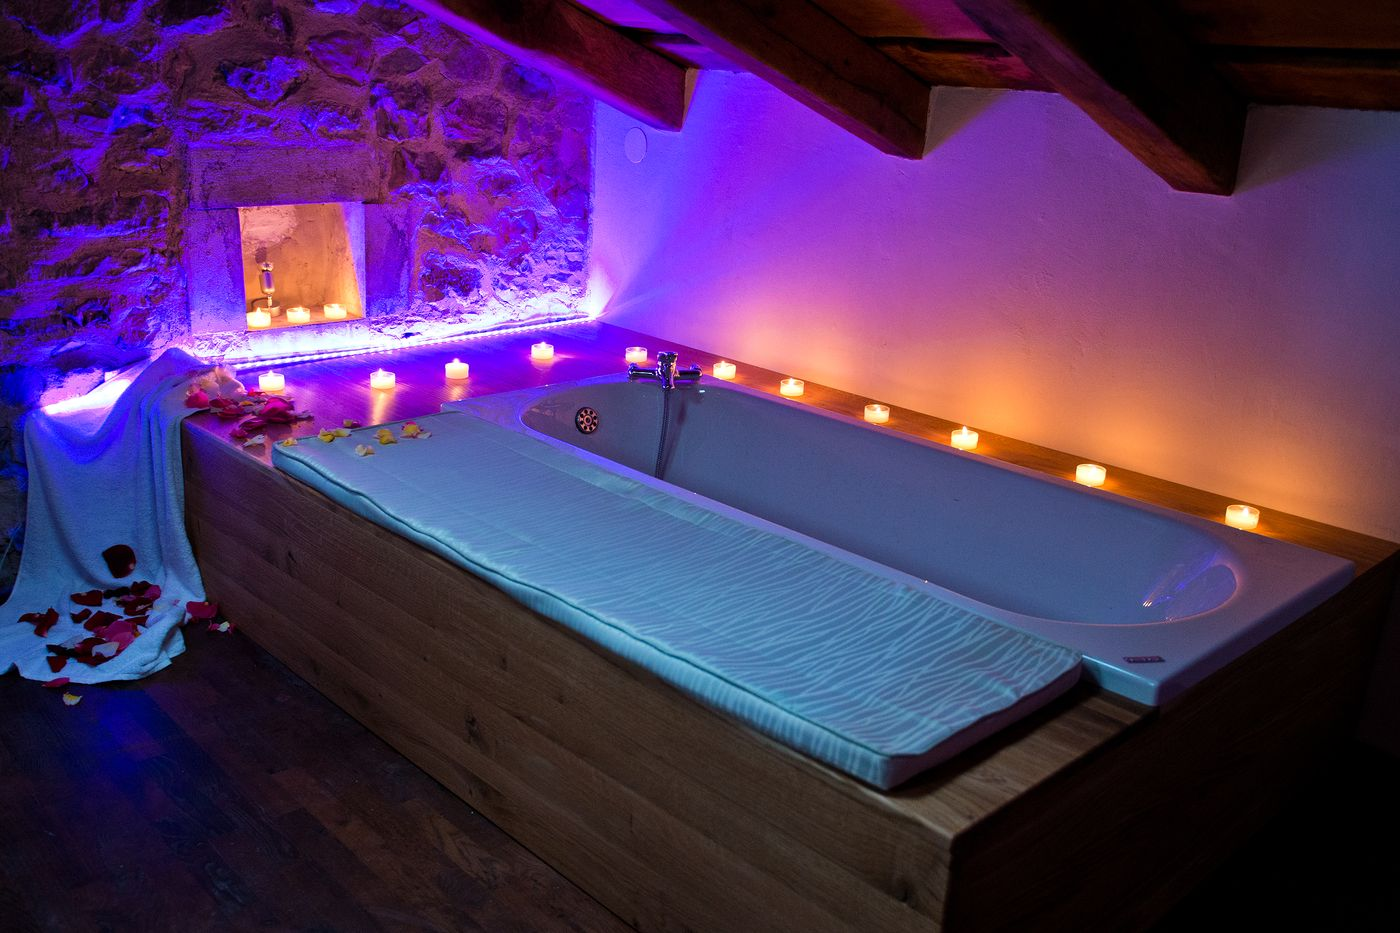 Bath Tube Asa Residence Private Villa Kras Slovenia